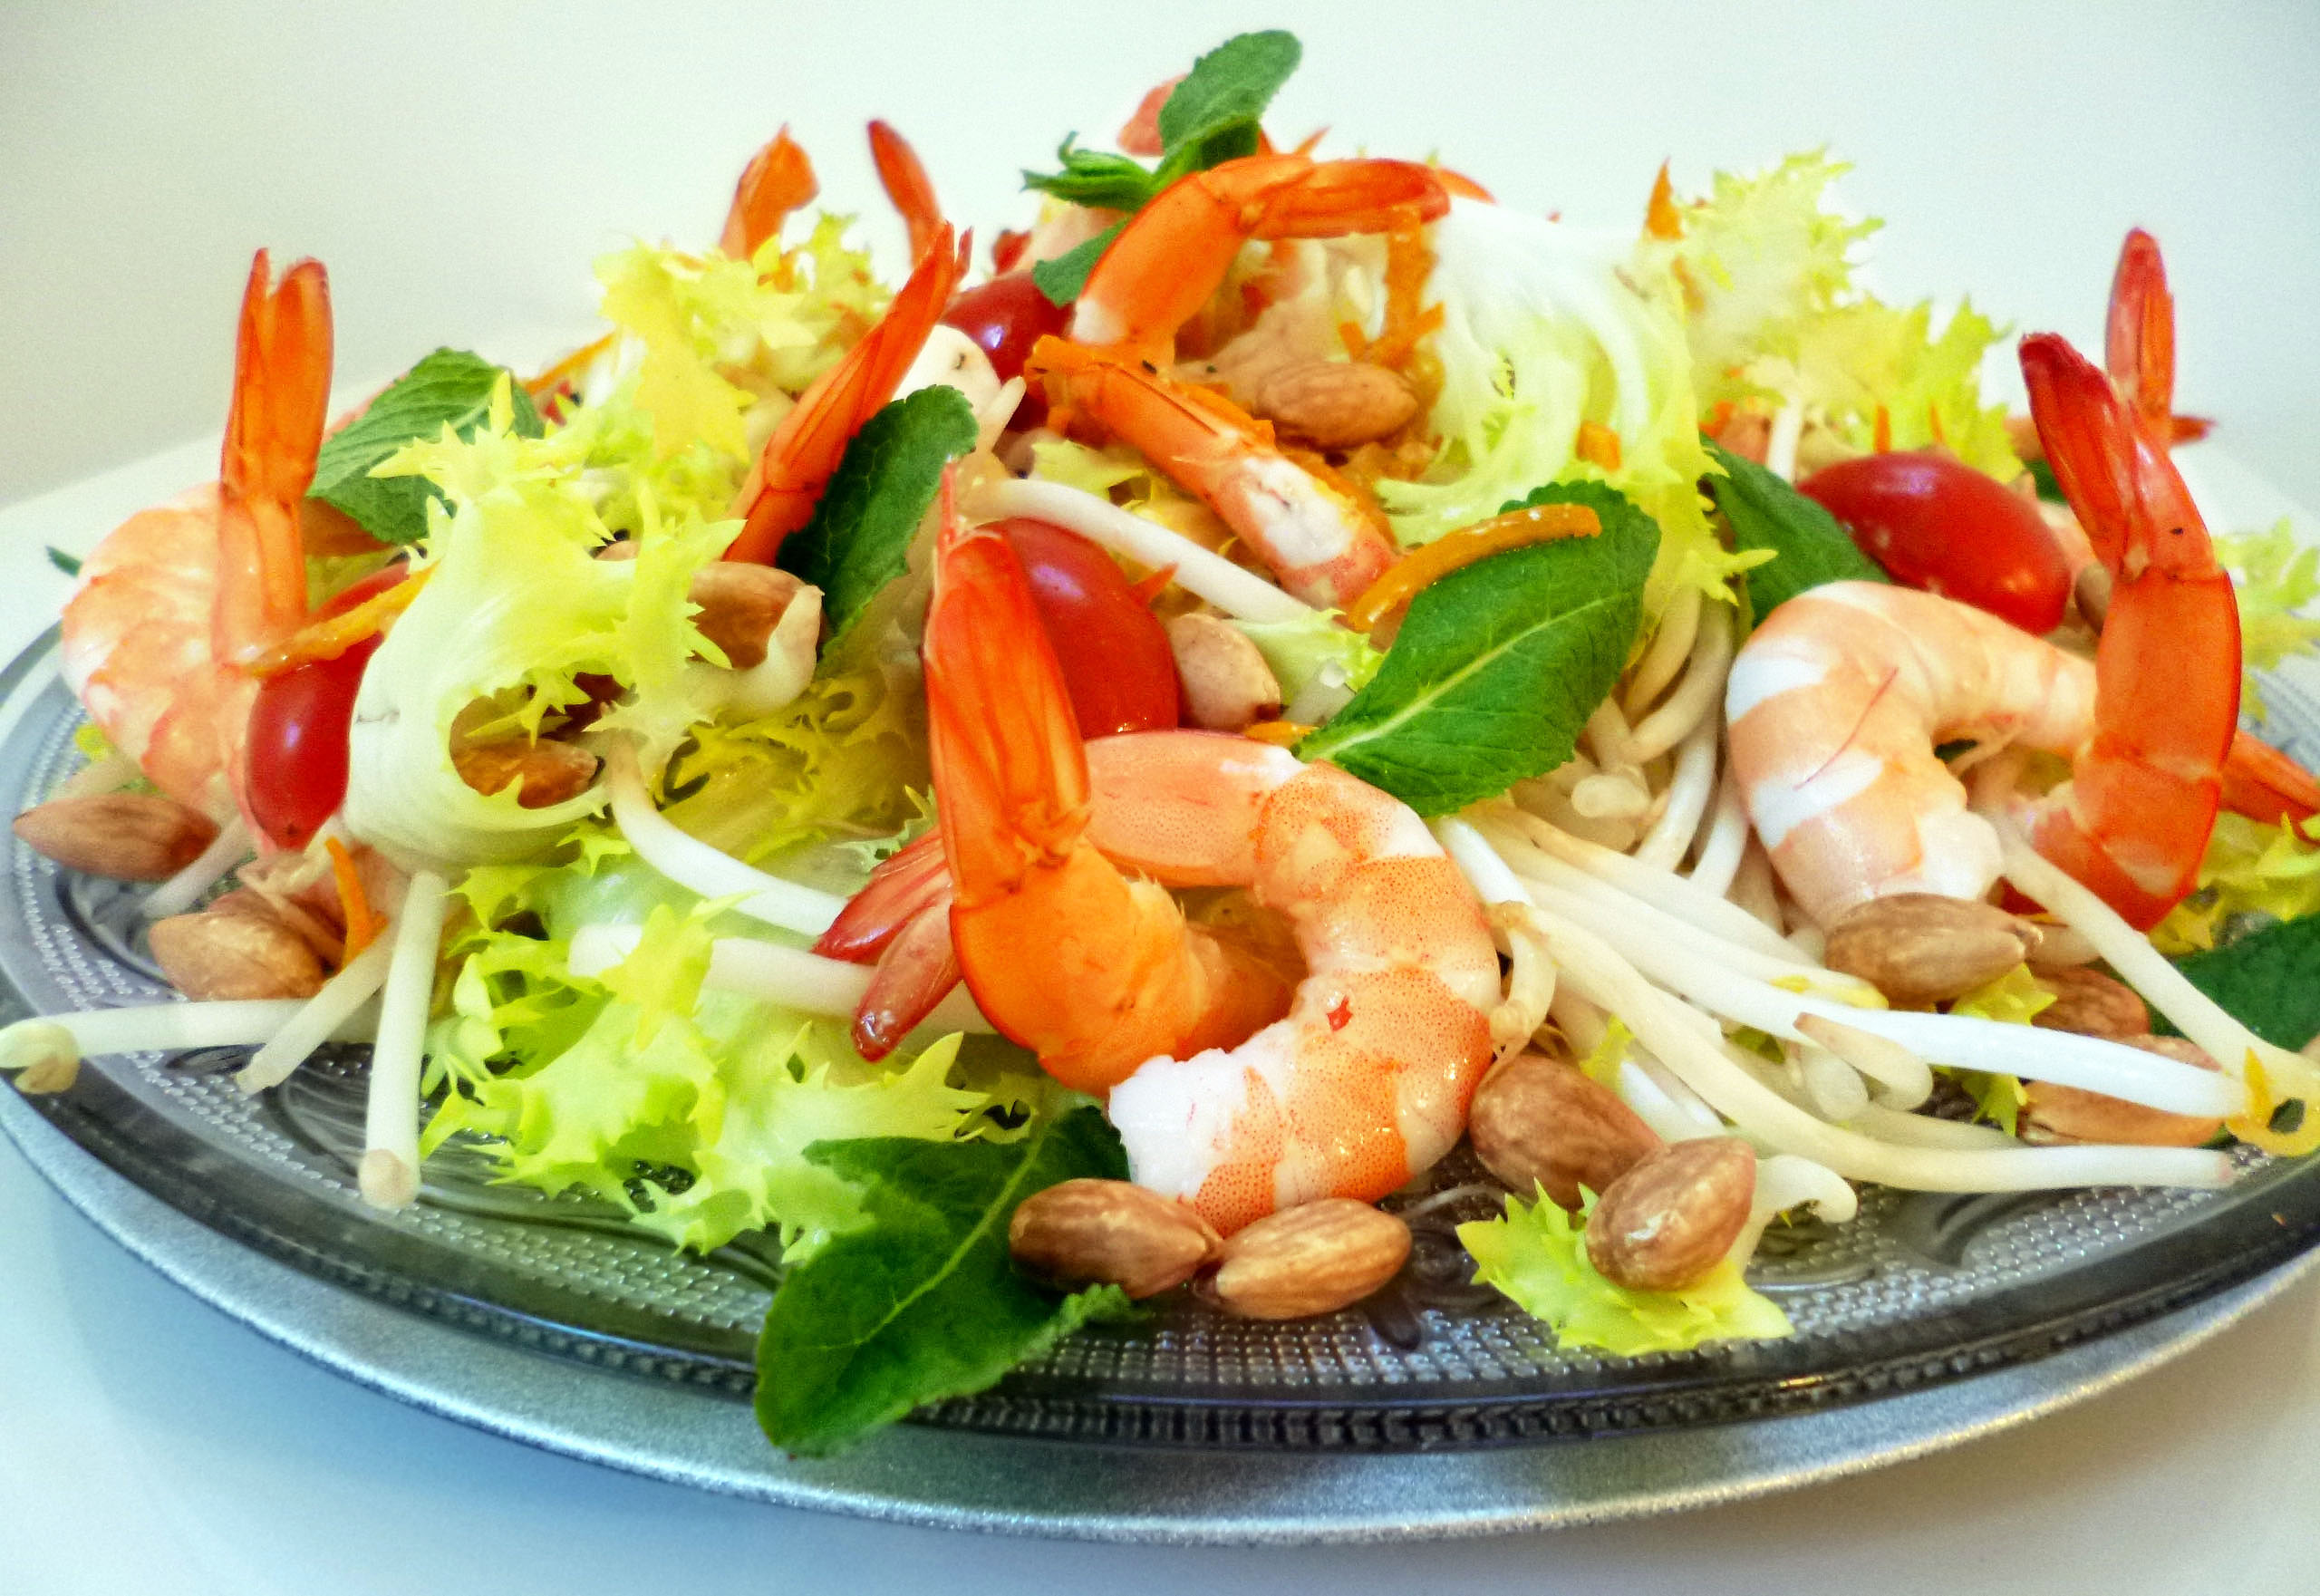 salade de crevettes au wasabi la recette facile par. Black Bedroom Furniture Sets. Home Design Ideas